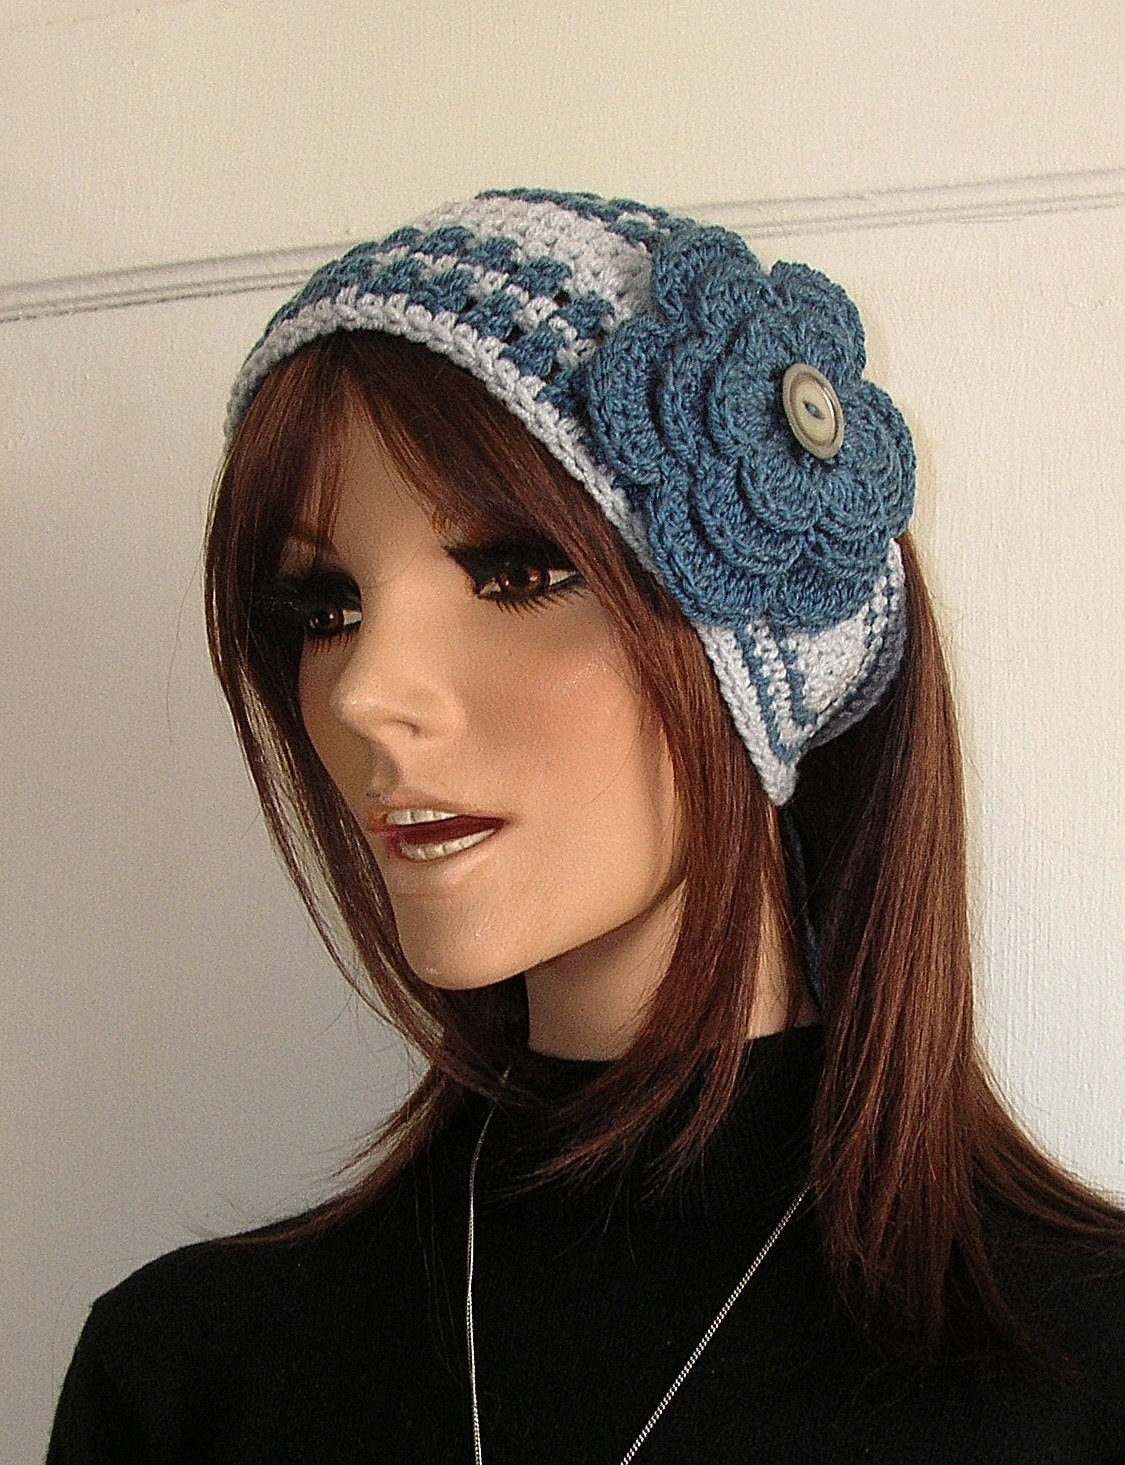 il 170x135.262960282 Etsy Treasury: Blue + Grey in Crochet